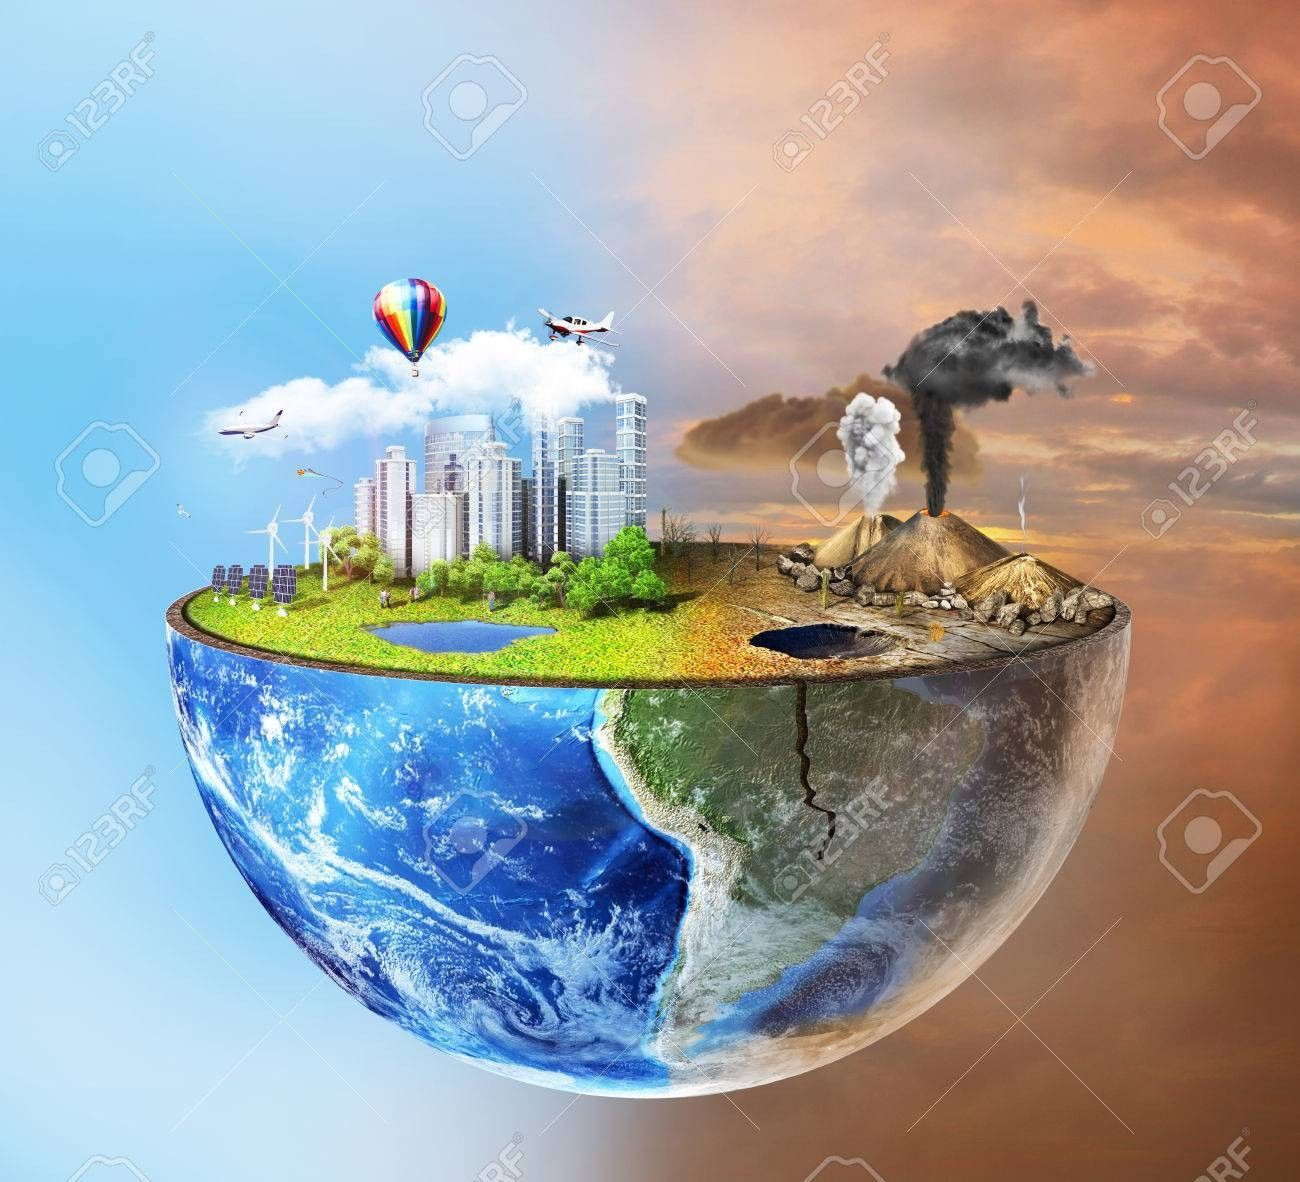 Stock Photo In 2020 Earth Drawings Pollution Pictures Save